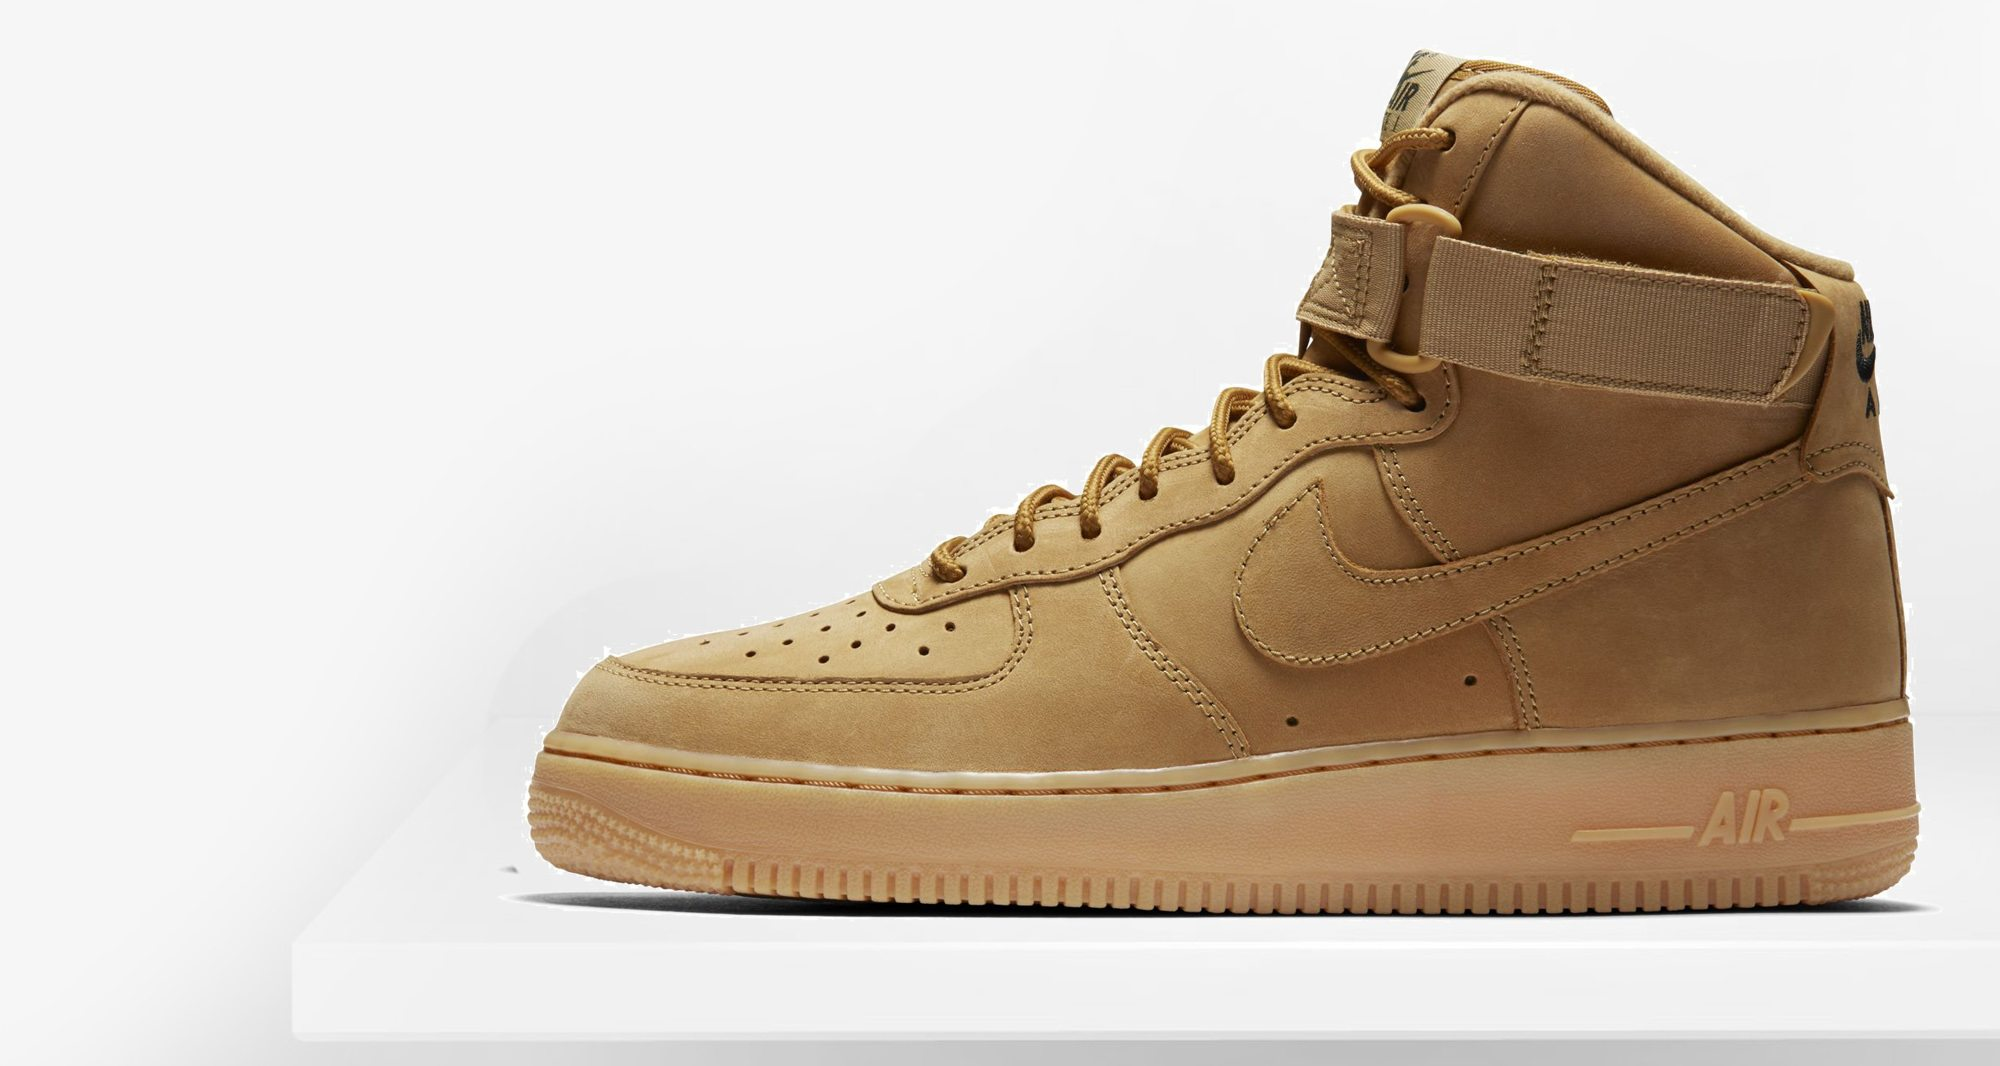 nike air force 1 high lv8 flax release date nice kicks. Black Bedroom Furniture Sets. Home Design Ideas